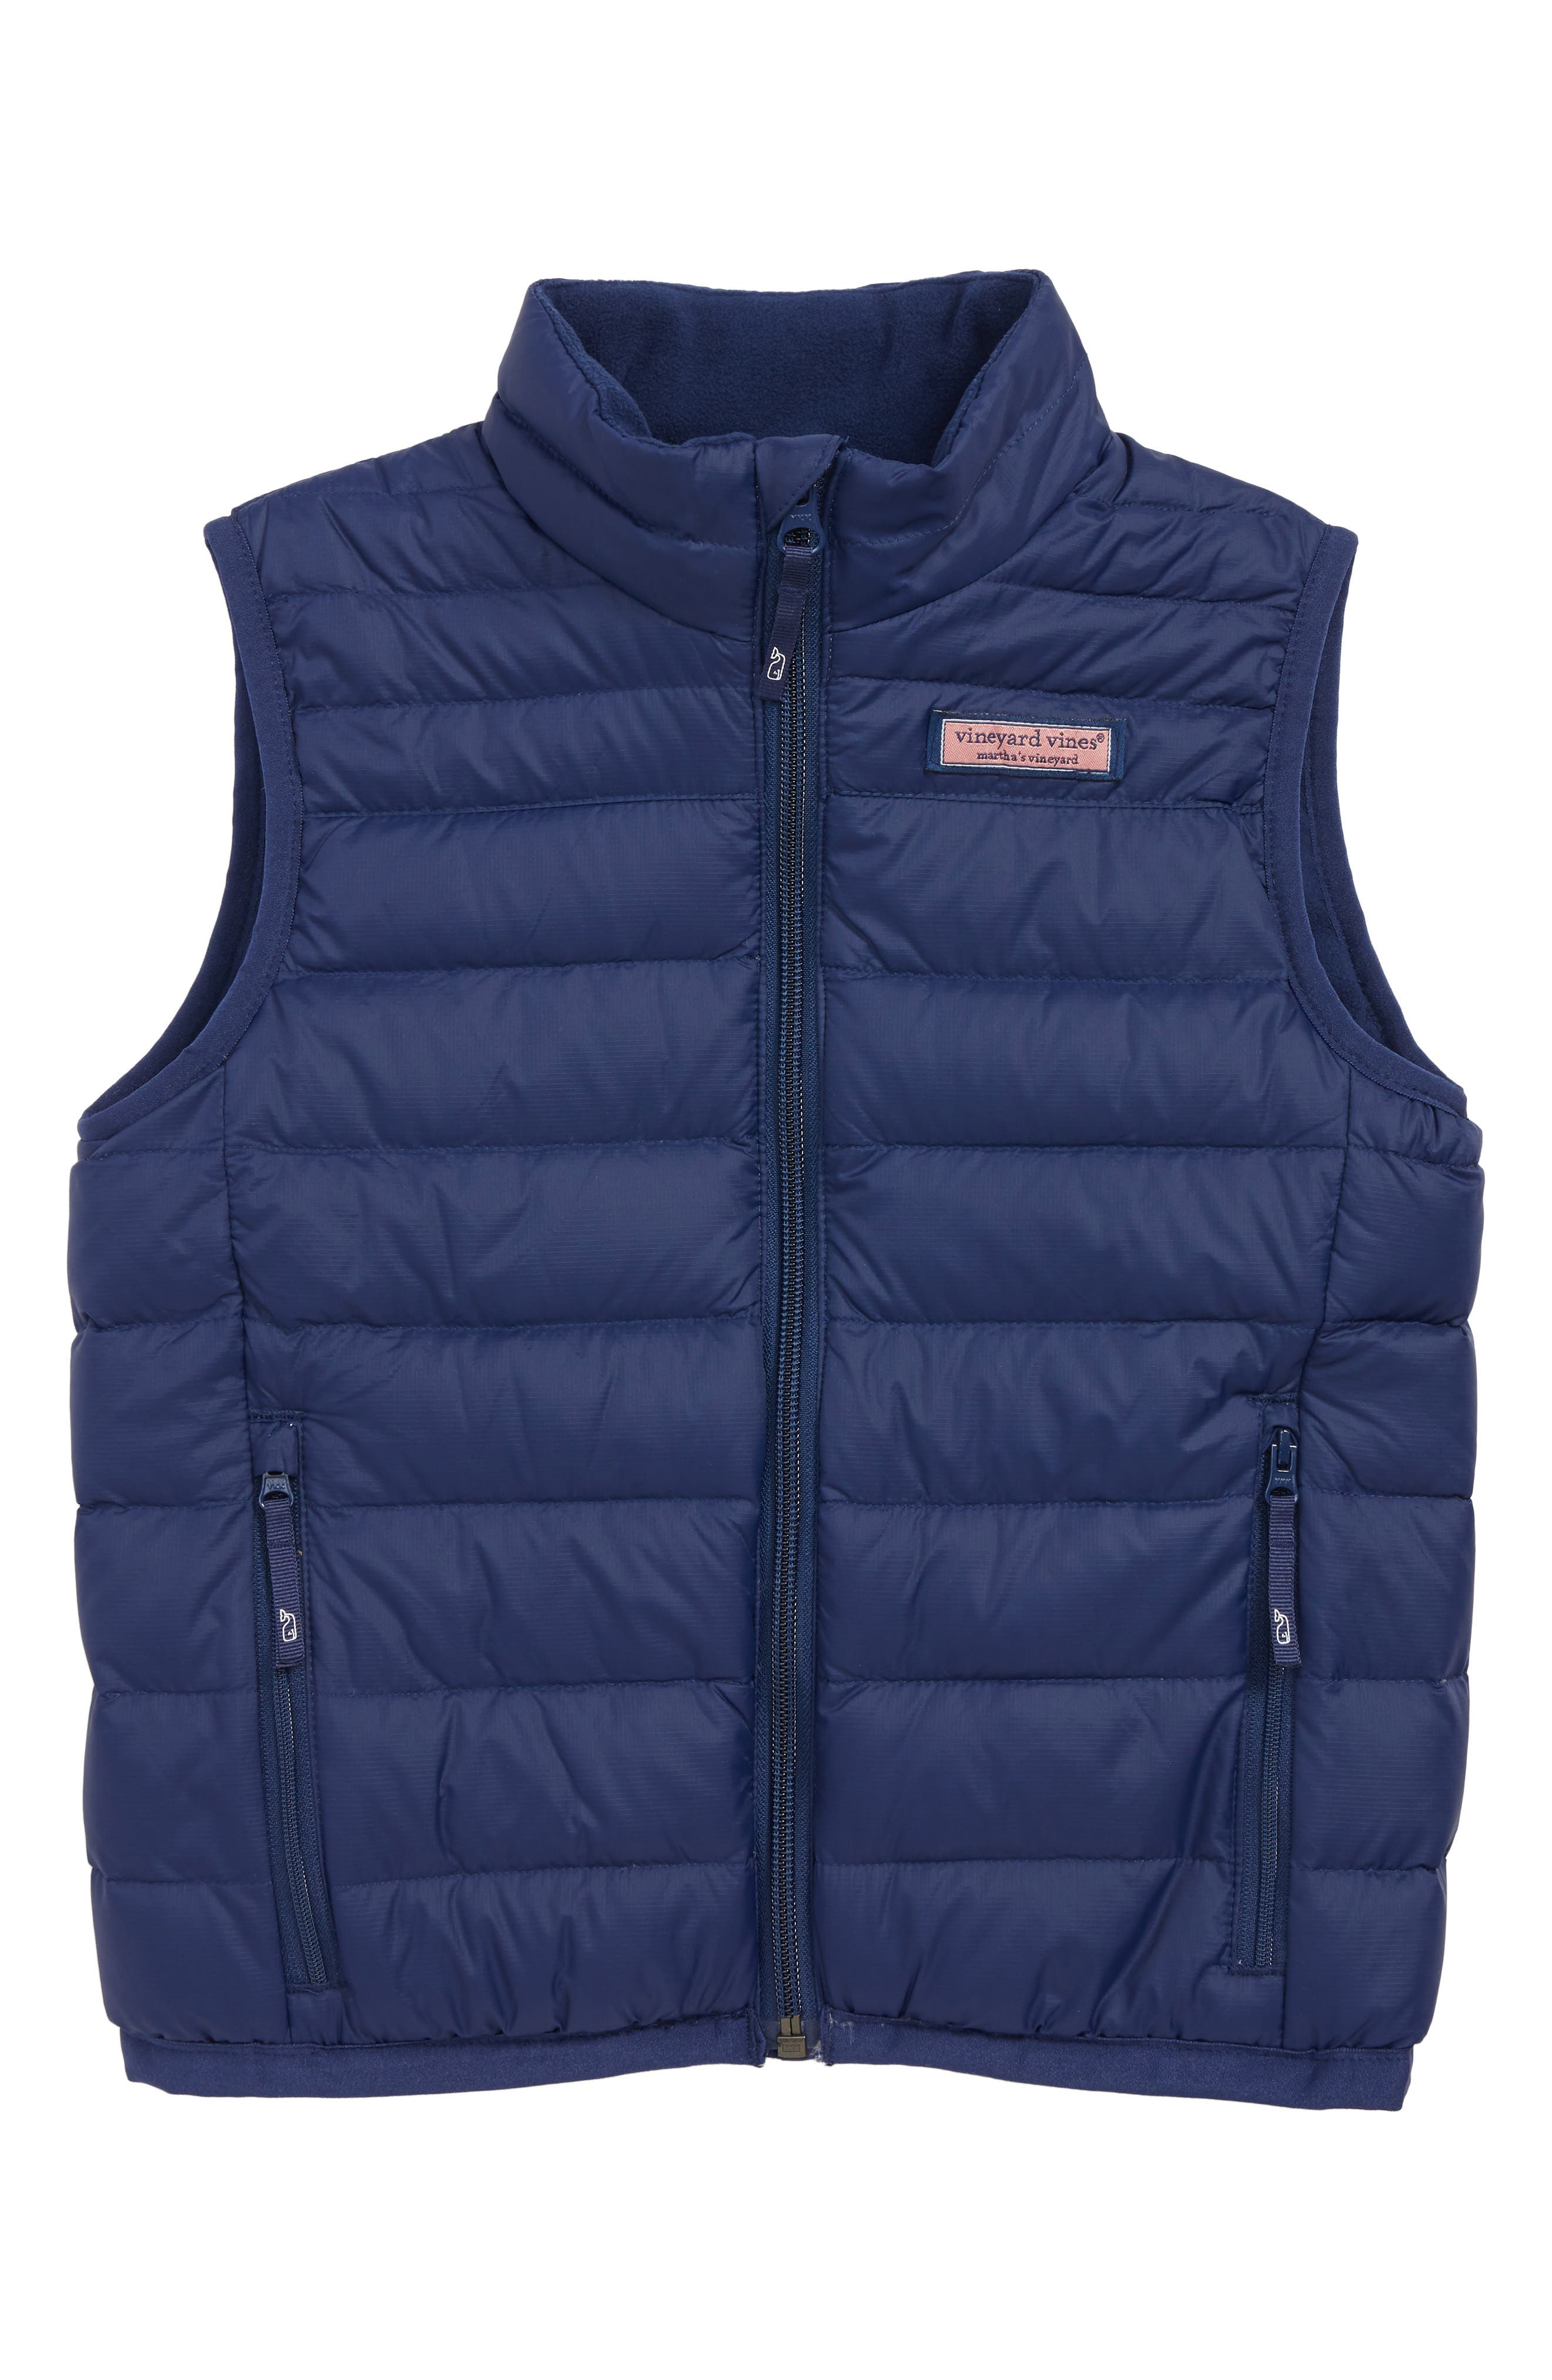 Mountain Weekend Down Vest,                             Main thumbnail 1, color,                             DEEP BAY